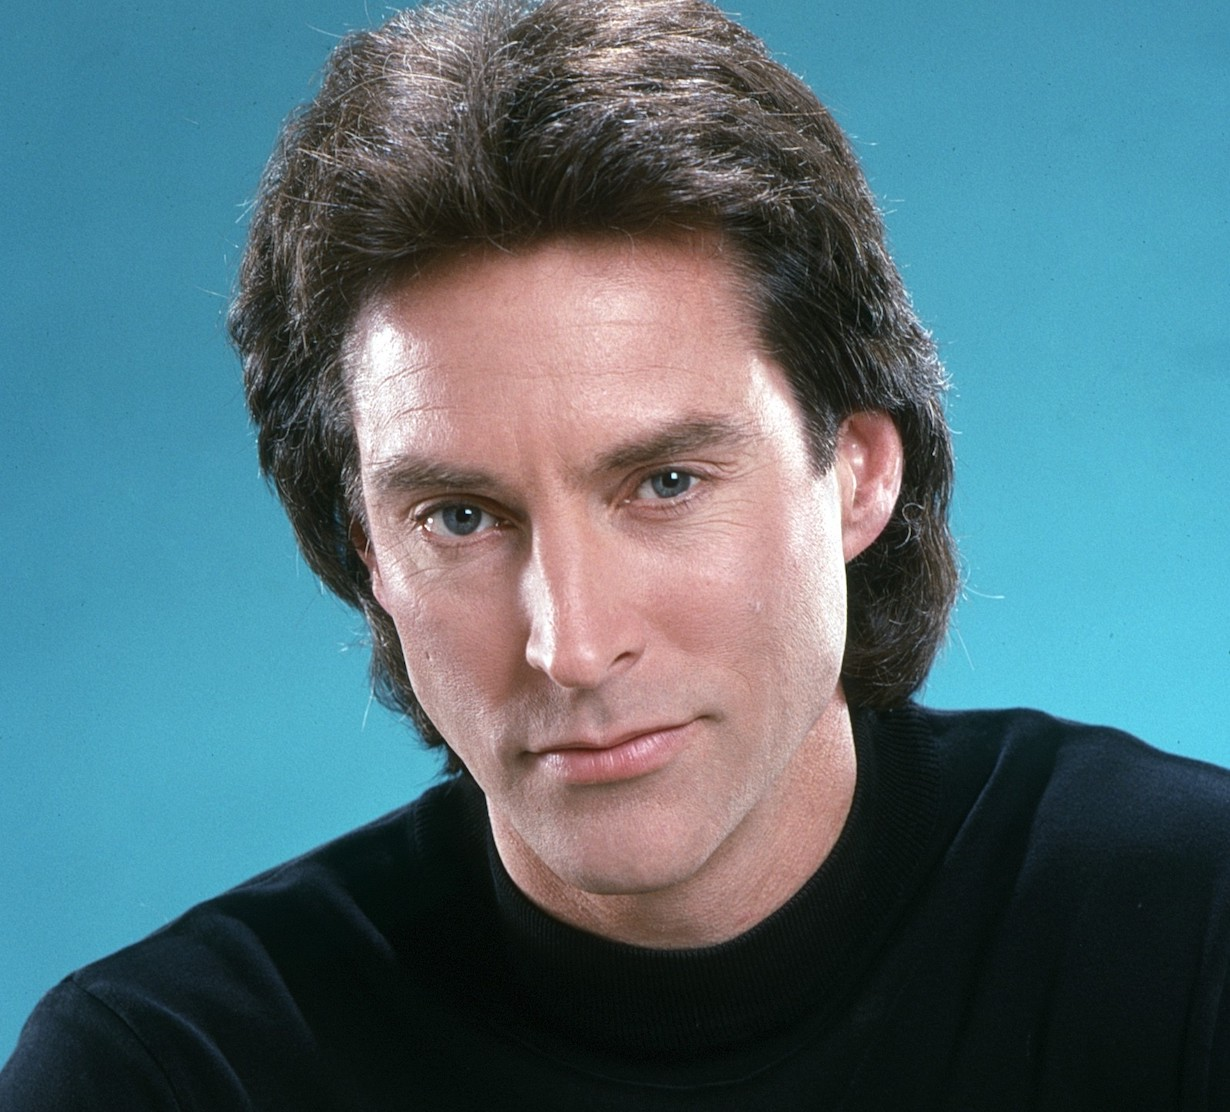 DAYS OF OUR LIVES, Drake Hogestyn, (1991), 1965- . ph: Gary Null/©NBC/Courtesy Everett Collection